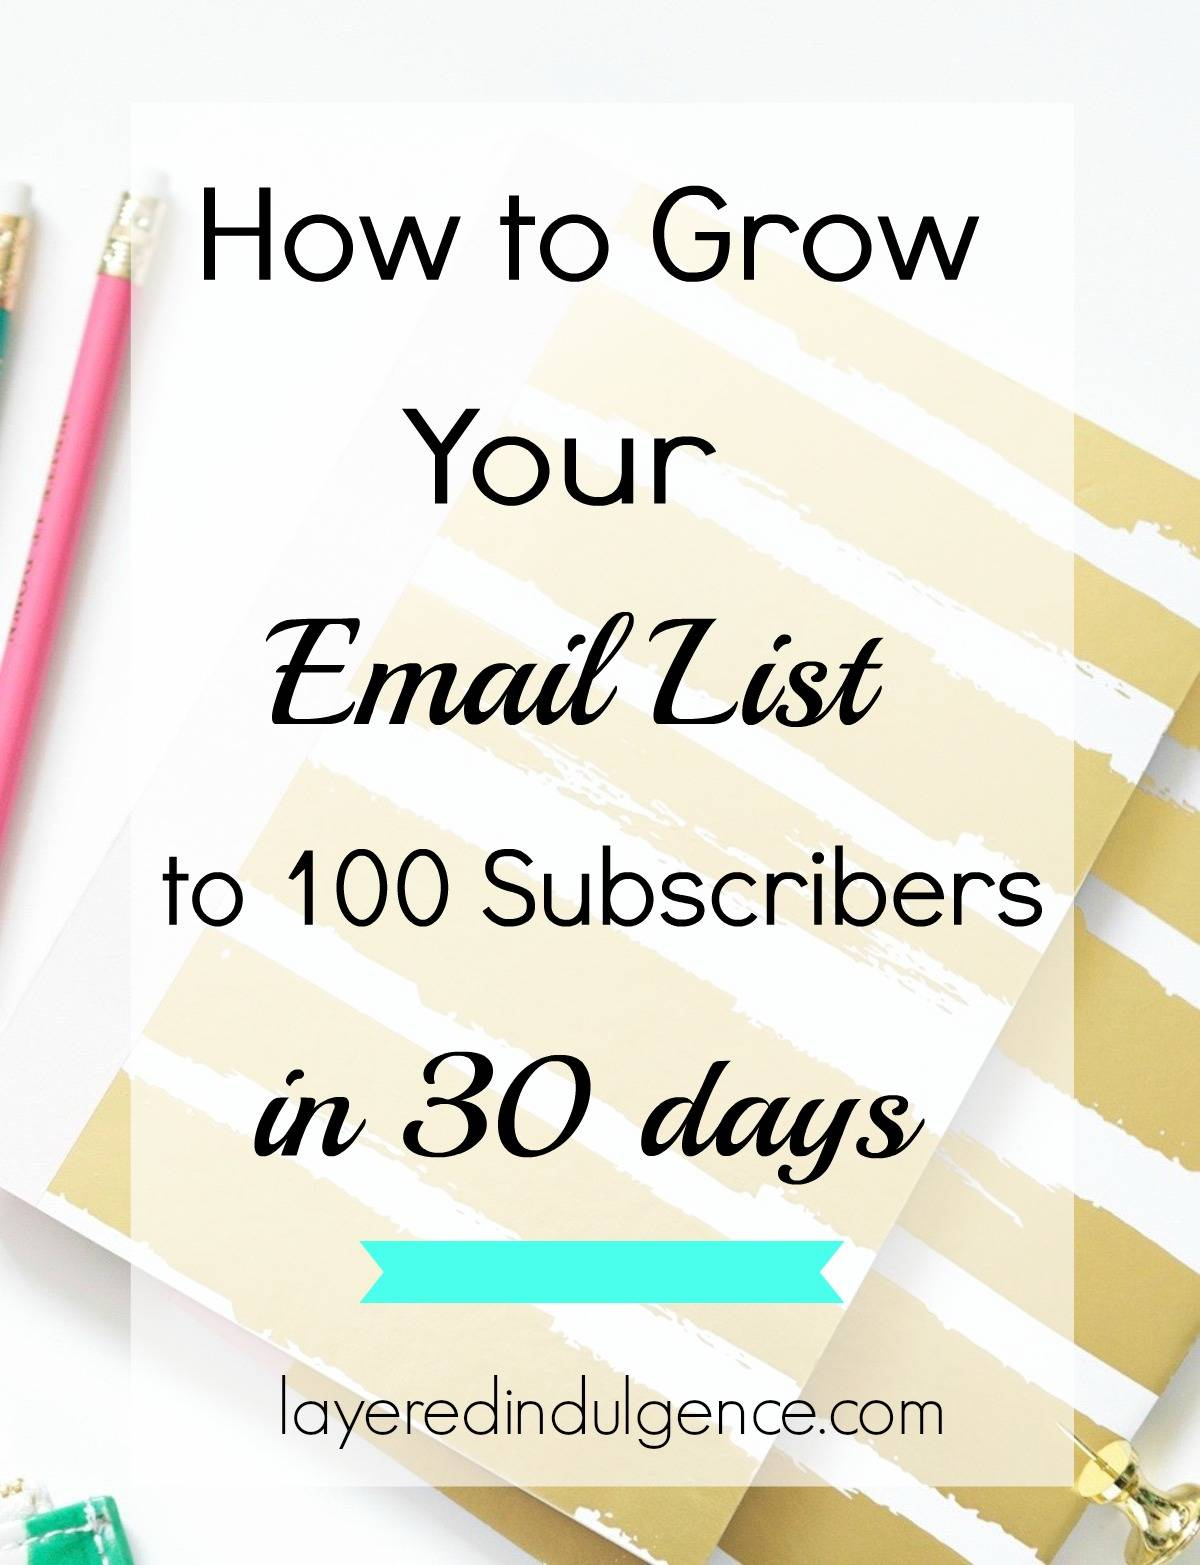 If there's one thing I can recommend for bloggers who want to grow, and eventually start monetizing their blog, it's building an email list. An email list is one of the best marketing tools for bloggers, and I'm dishing out my best tips for getting people to sign up and join your list! Plus, I've created a list of ideas you can send to your subcribers on the weekly! Click through to read the post now, or save this pin for later!